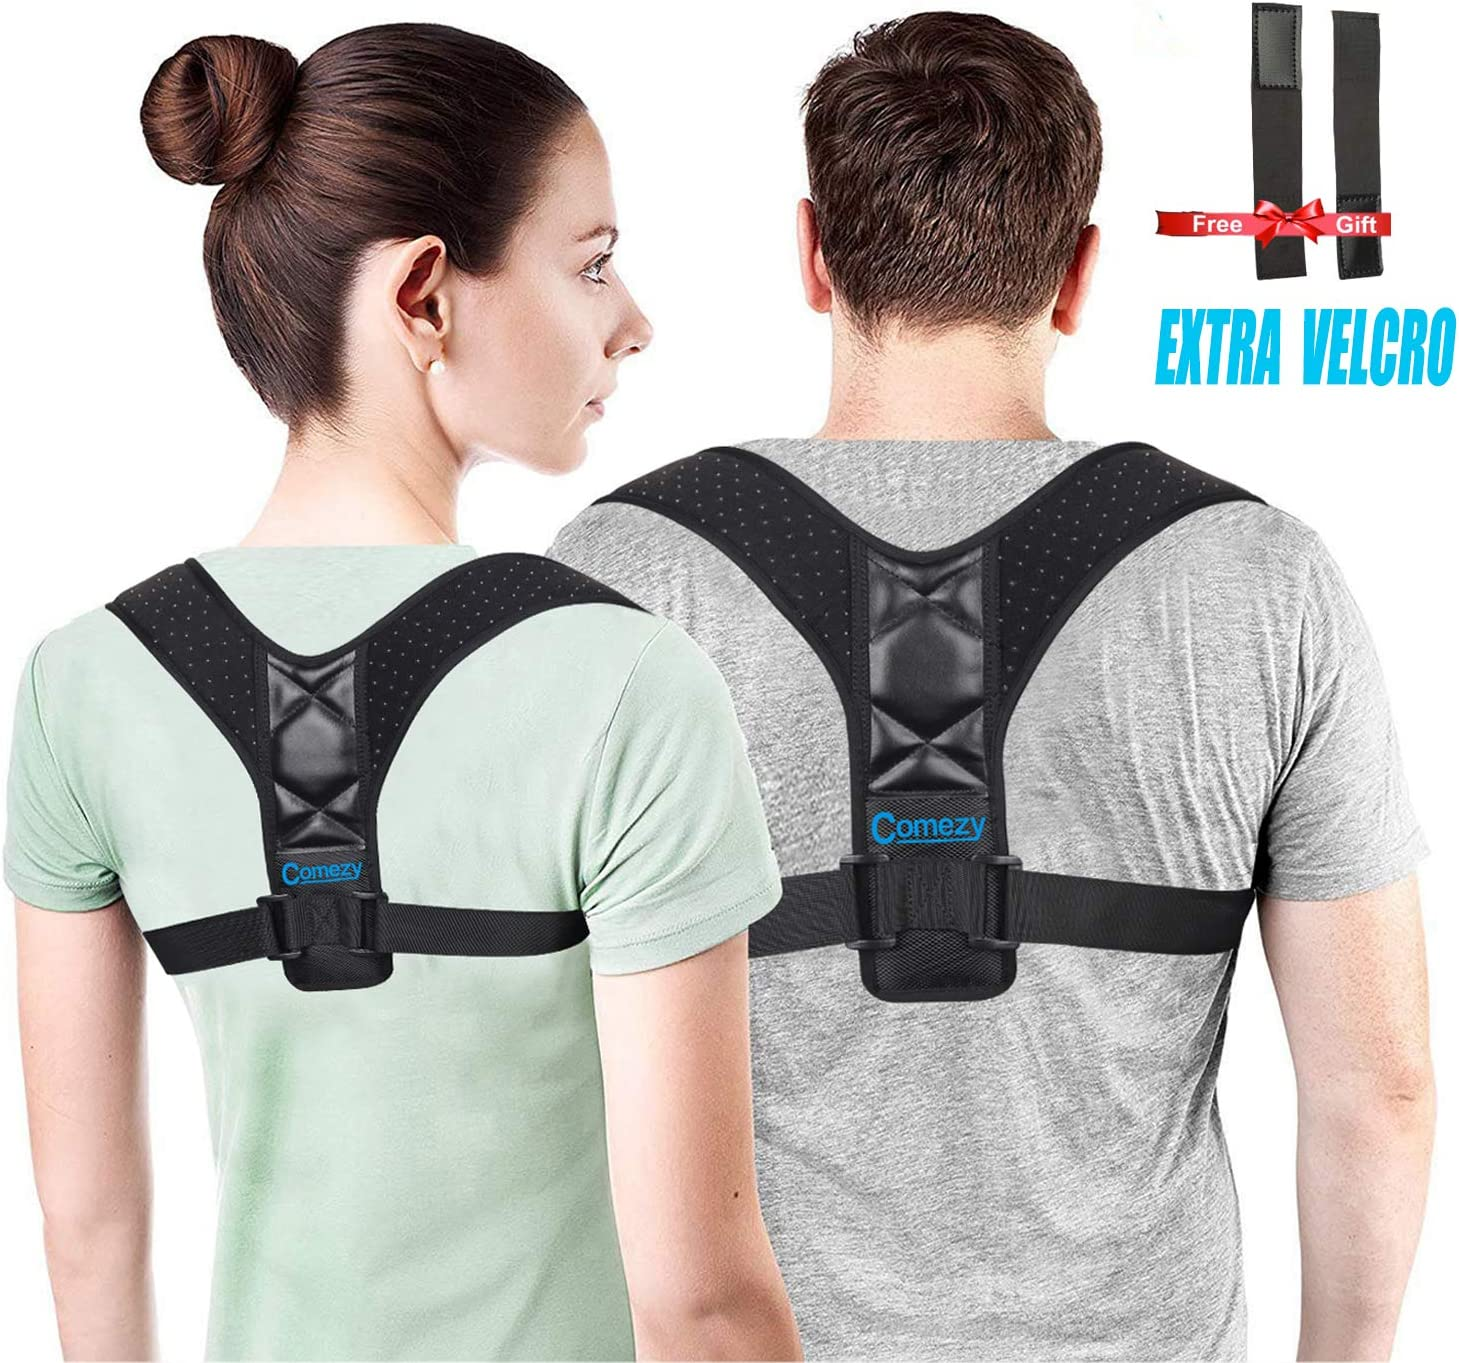 Comezy Back Posture Corrector for Women & Men - Powerful Magic Stickers Adjustable Clavicle Back Brace - Providing Pain Relief From Neck, Back and Shoulder( Universal )